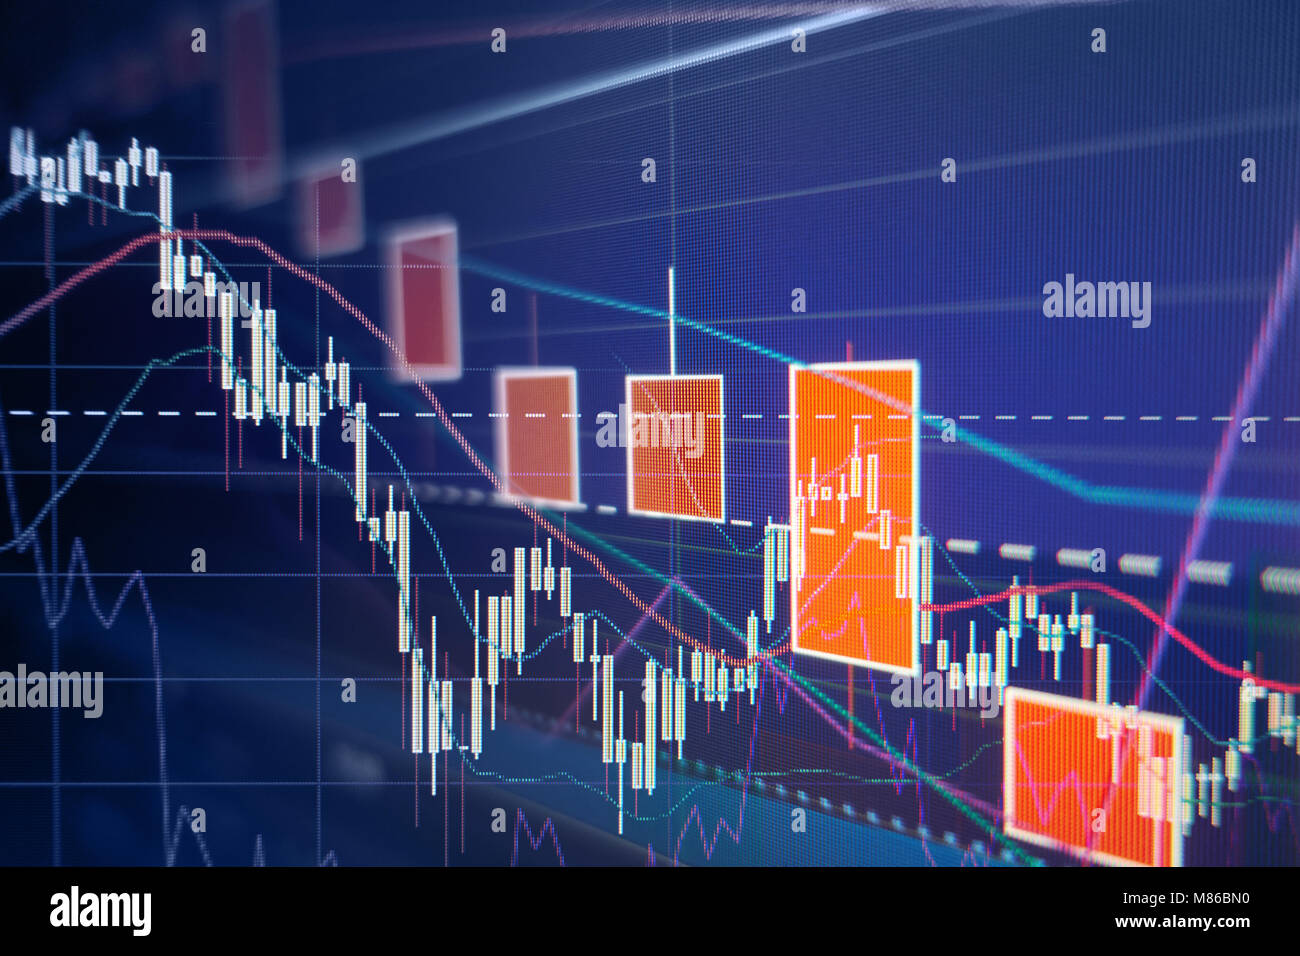 Stock market selloff  -  Stock graphs and charts - Financial and business background Stock Photo